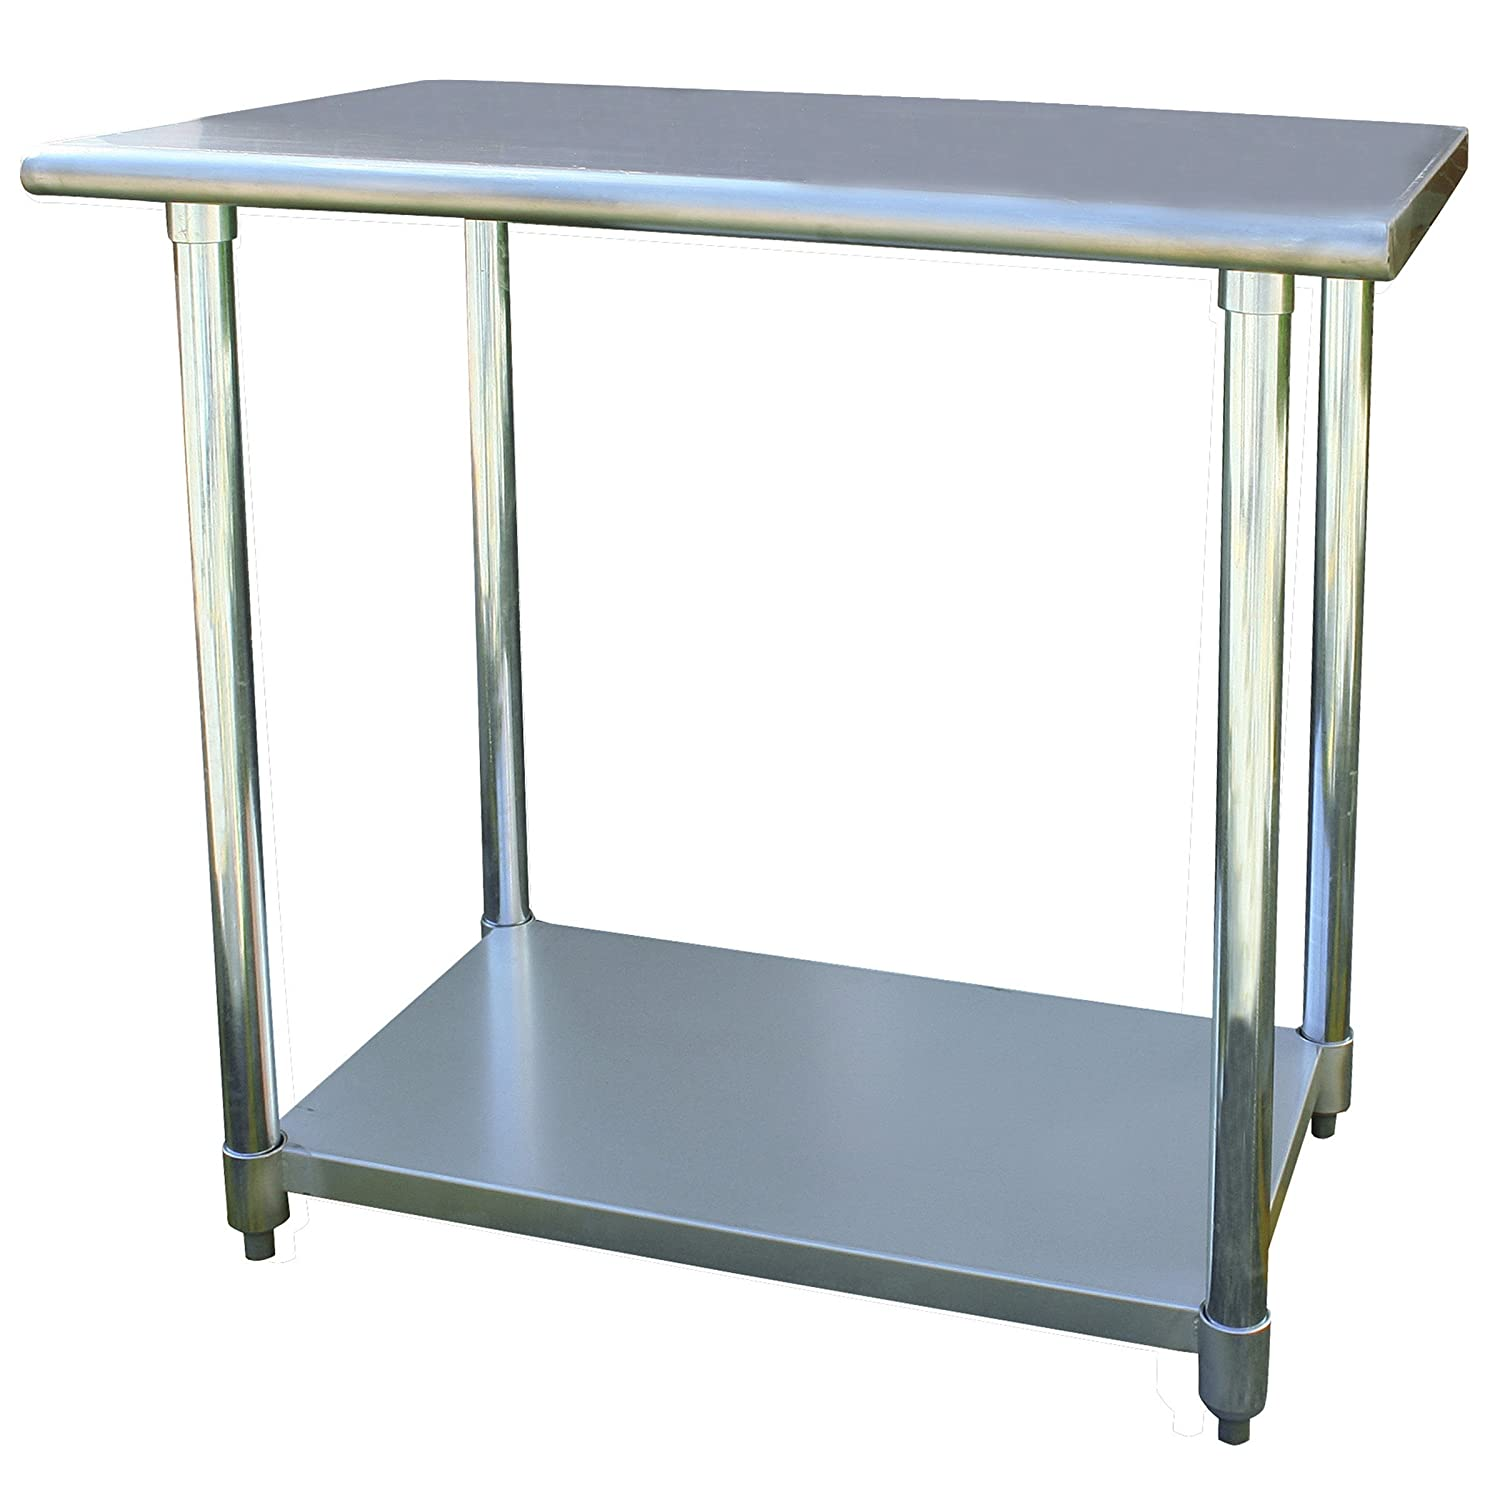 Amazon.com: Sportsman Stainless Steel Work Table, 24 By 36 Inch: Patio,  Lawn U0026 Garden Part 73